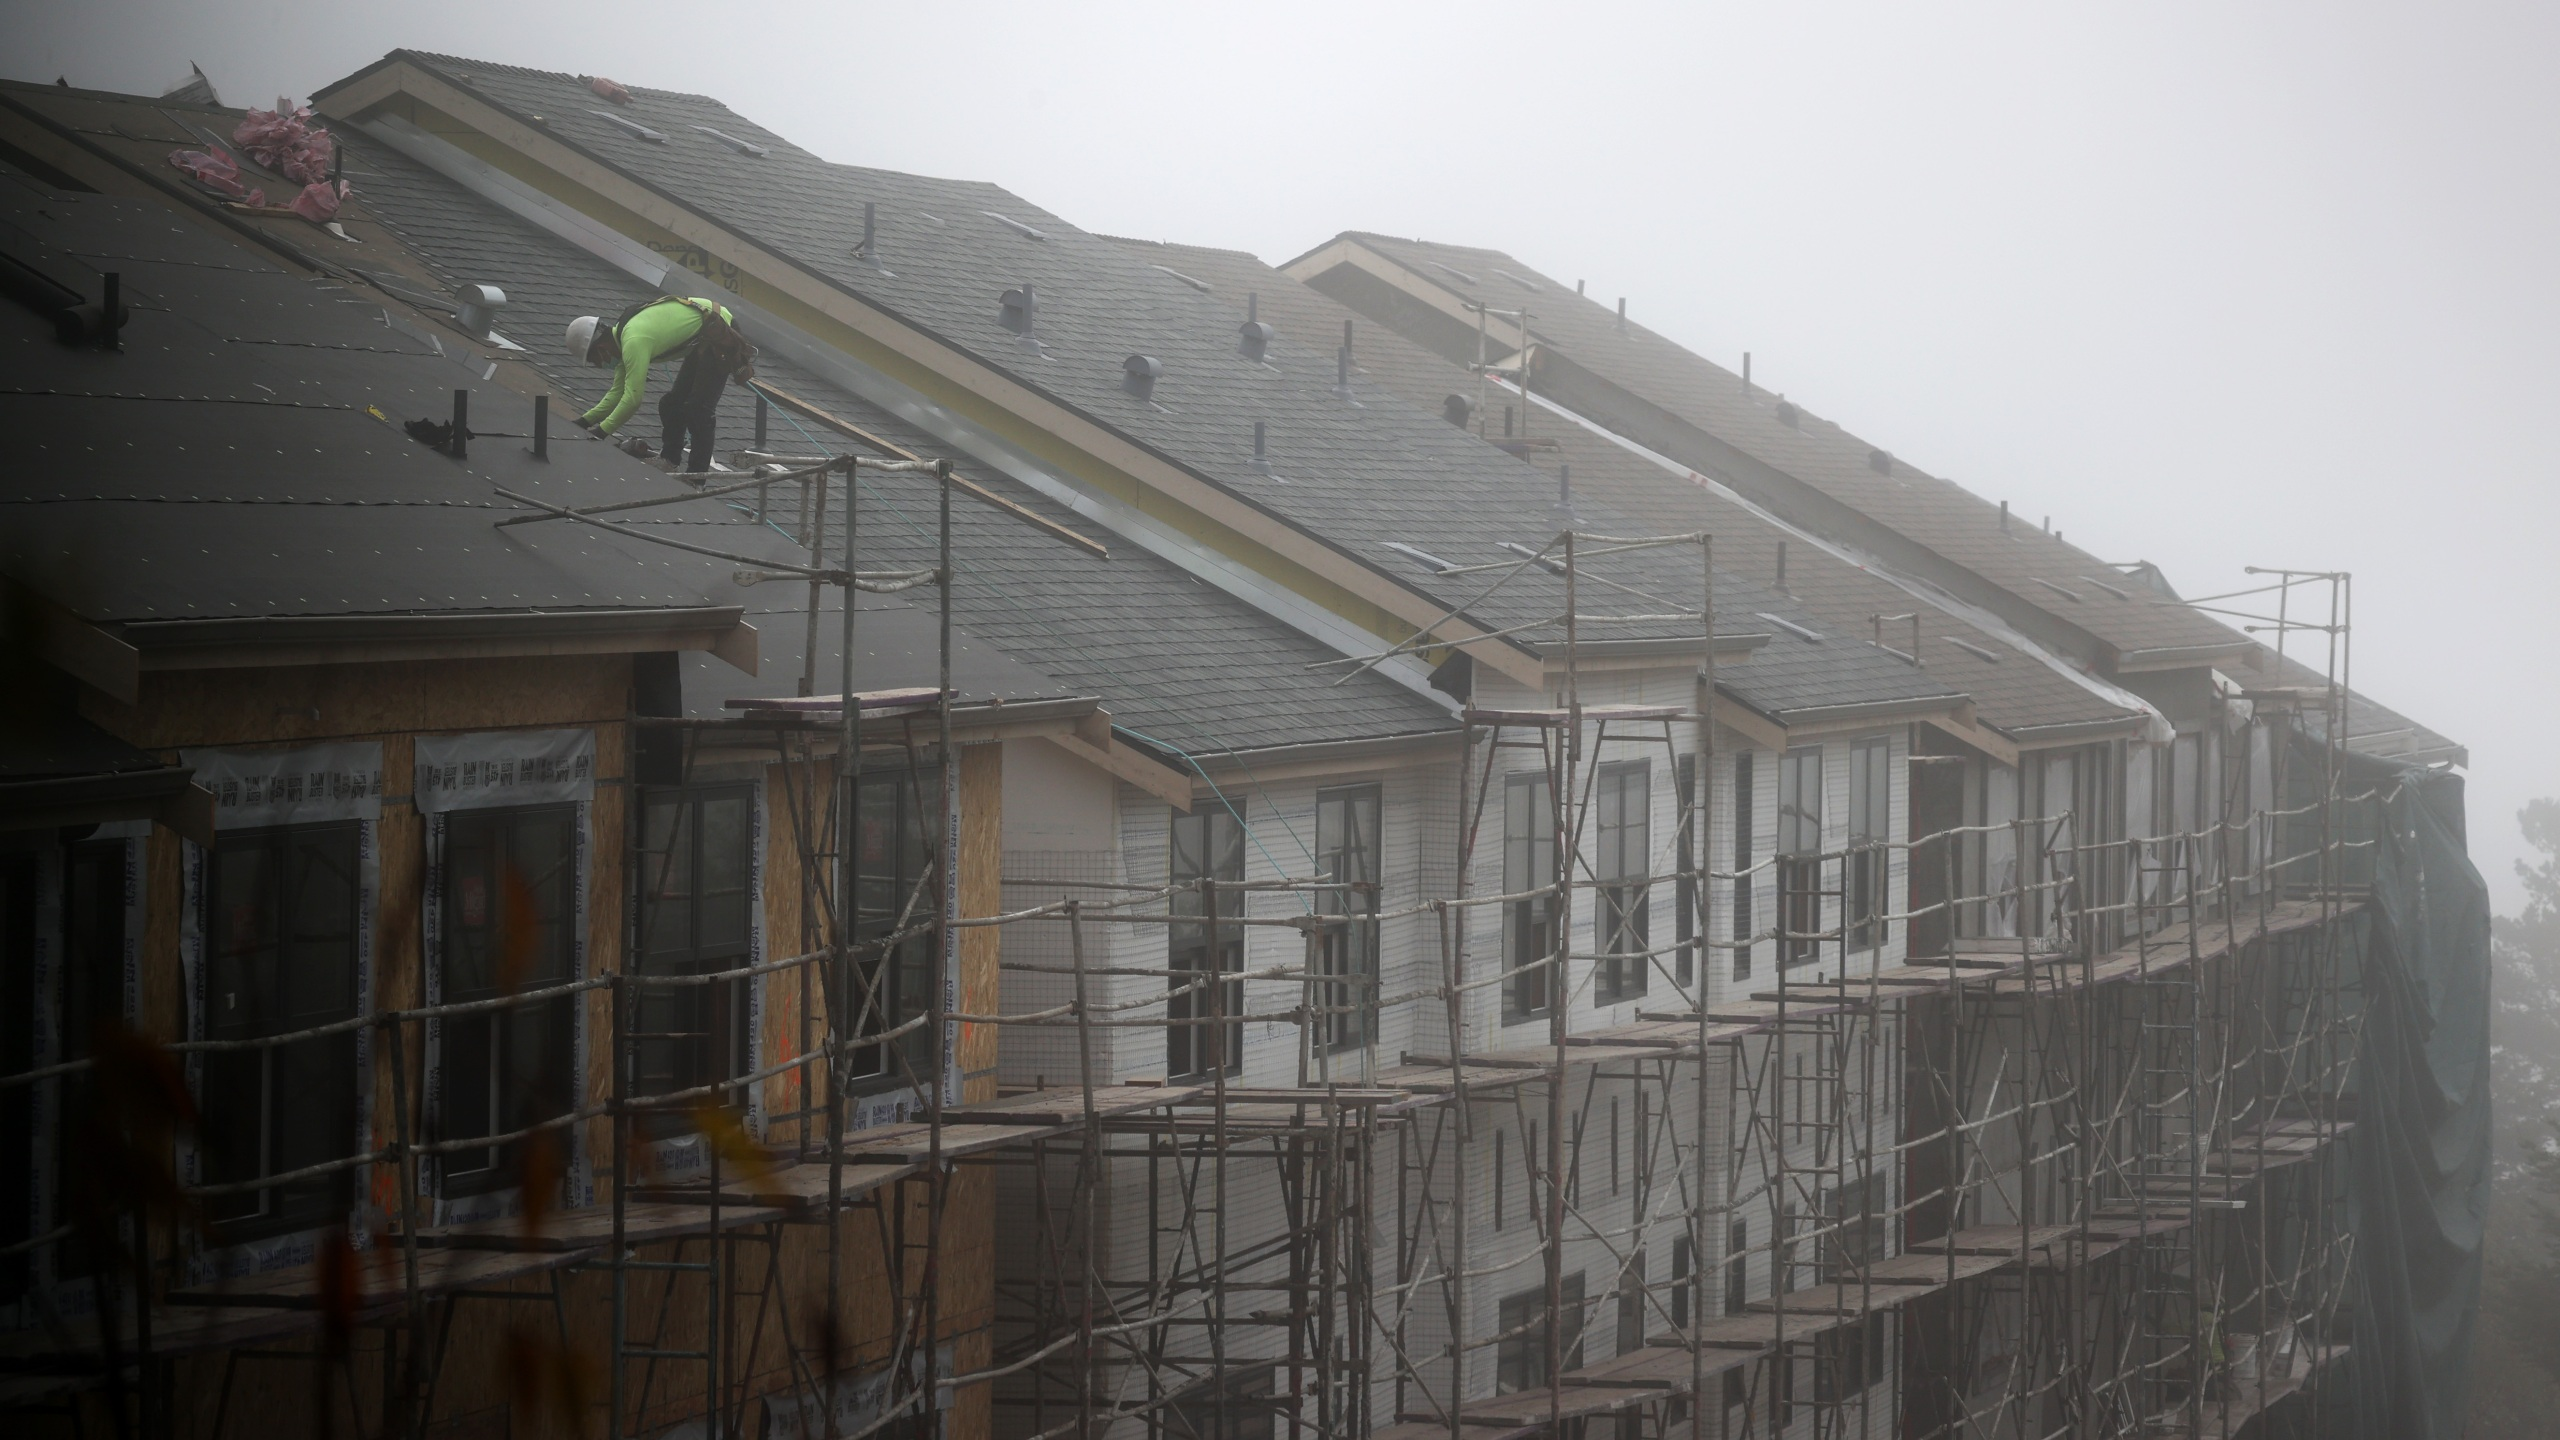 A worker stands on the roof of a new home under construction on September 24, 2020 in South San Francisco. Justin Sullivan/Getty Images)